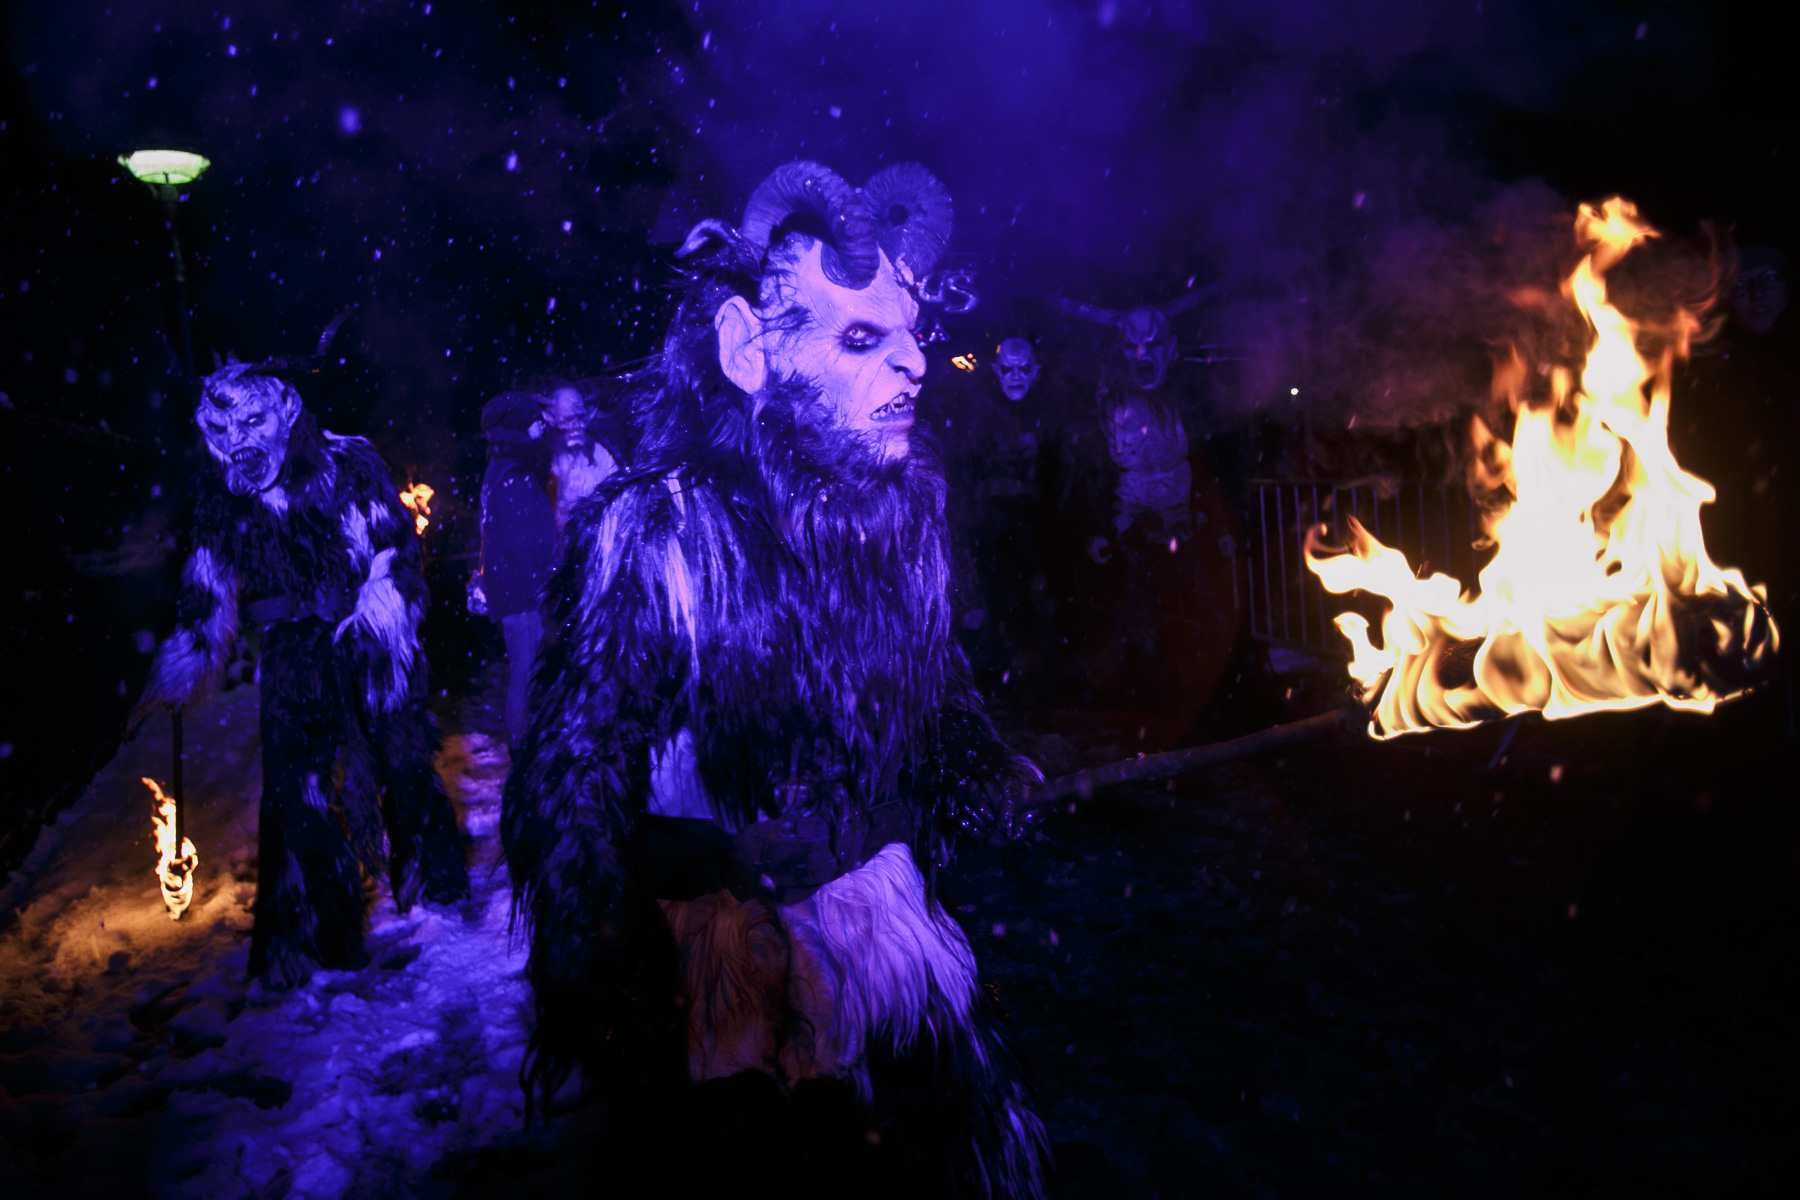 Participants dressed as Krampus creatures walk the street during the Krampus gathering in Goricane, Slovenia, Nov. 21, 2015. In Central European alpine folklore, Krampus is a demonic creature traditionally following St. Nicholas and angels on the evening of December 5. It pries on children who were not good during the year.